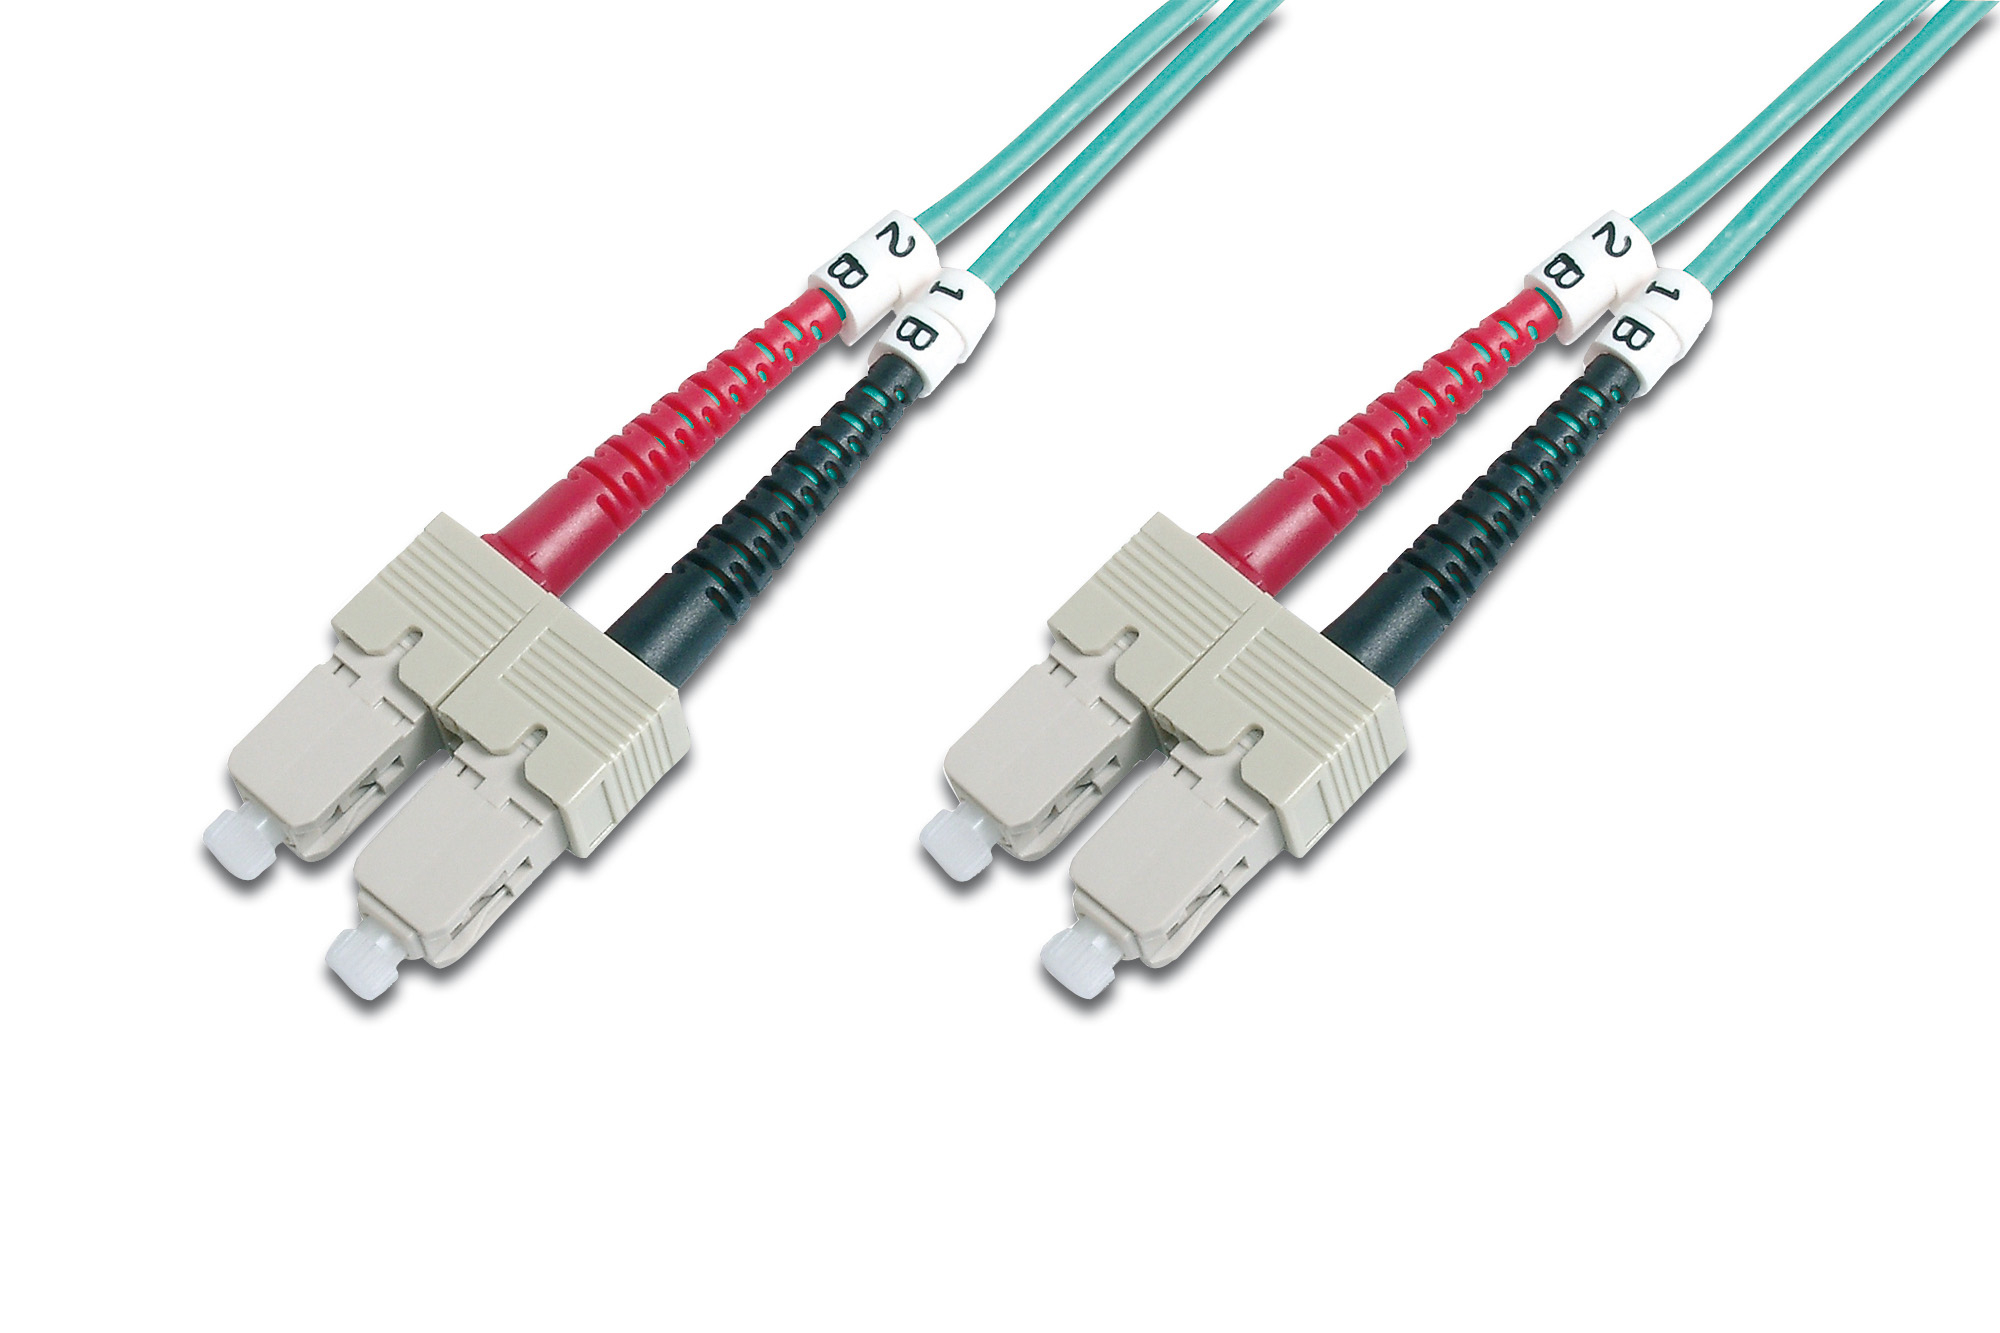 DIGITUS DK-2522-07/3 SC/SC, 7 M FIBER OPTIC CABLE MULTICOLOUR